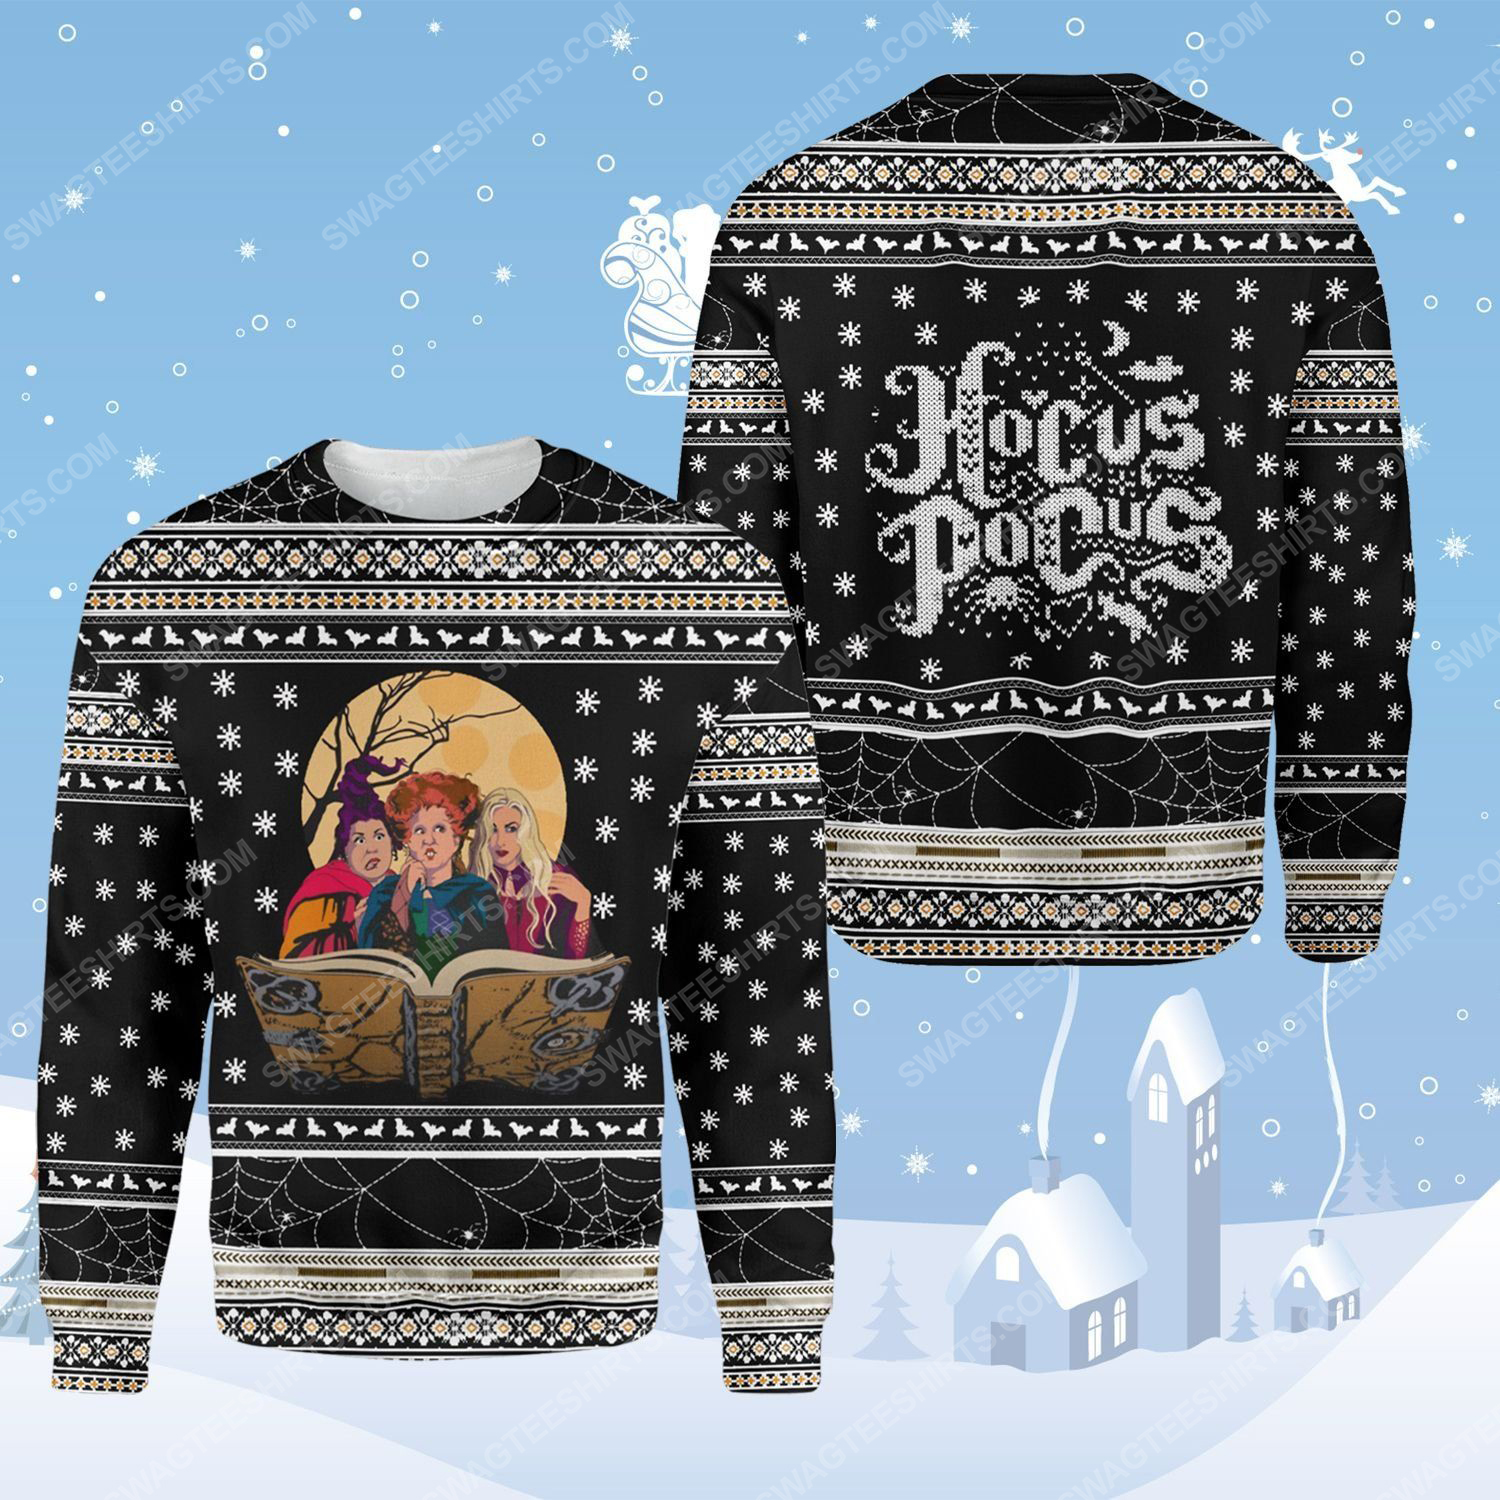 Hocus pocus witches ugly christmas sweater - Copy